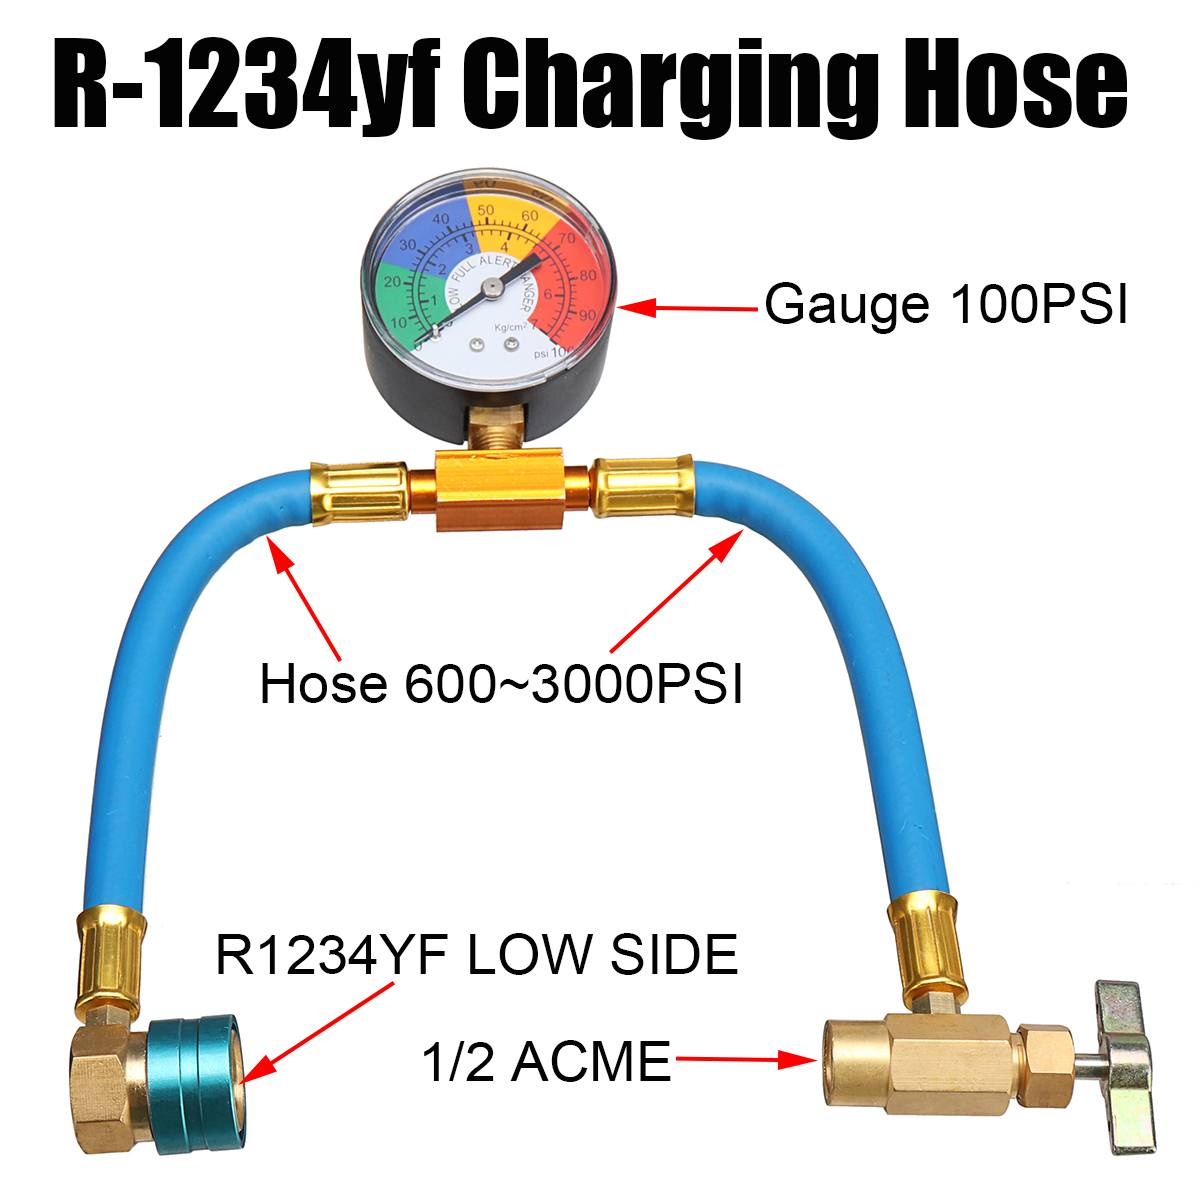 a c r 1234yf charging hose with manifold gauge couplers kit for car air conditioning a c refrigerant pressure charging hose in air conditioning installation  [ 1200 x 1200 Pixel ]